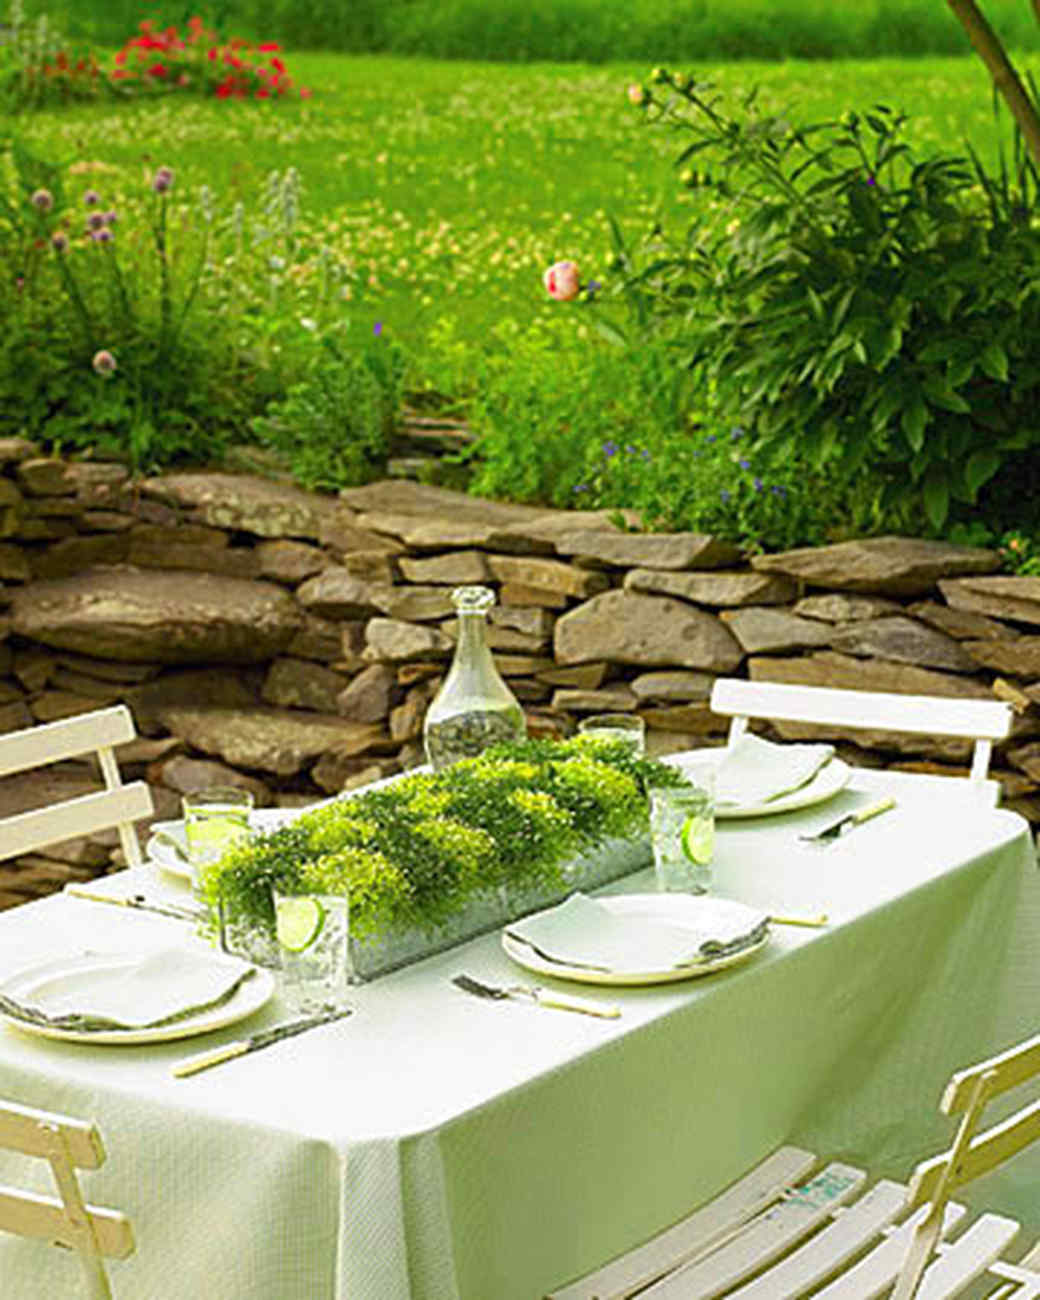 Outdoor Party Ideas | Martha Stewart on garden irrigation ideas, sunset magazine landscaping ideas, sunset party ideas, diy container gardening ideas, southern california landscape ideas, sunset decorating ideas, sunset magazine garden, sunset magazine container gardening, garden and outdoor living ideas, sunset bbq ideas, sunset patios, sunset room ideas, sunset furniture, sunset bathroom ideas, sunset garden book, sunset picnic ideas, sunset summer, sunset design ideas, sunset storage ideas, sunset painting ideas,